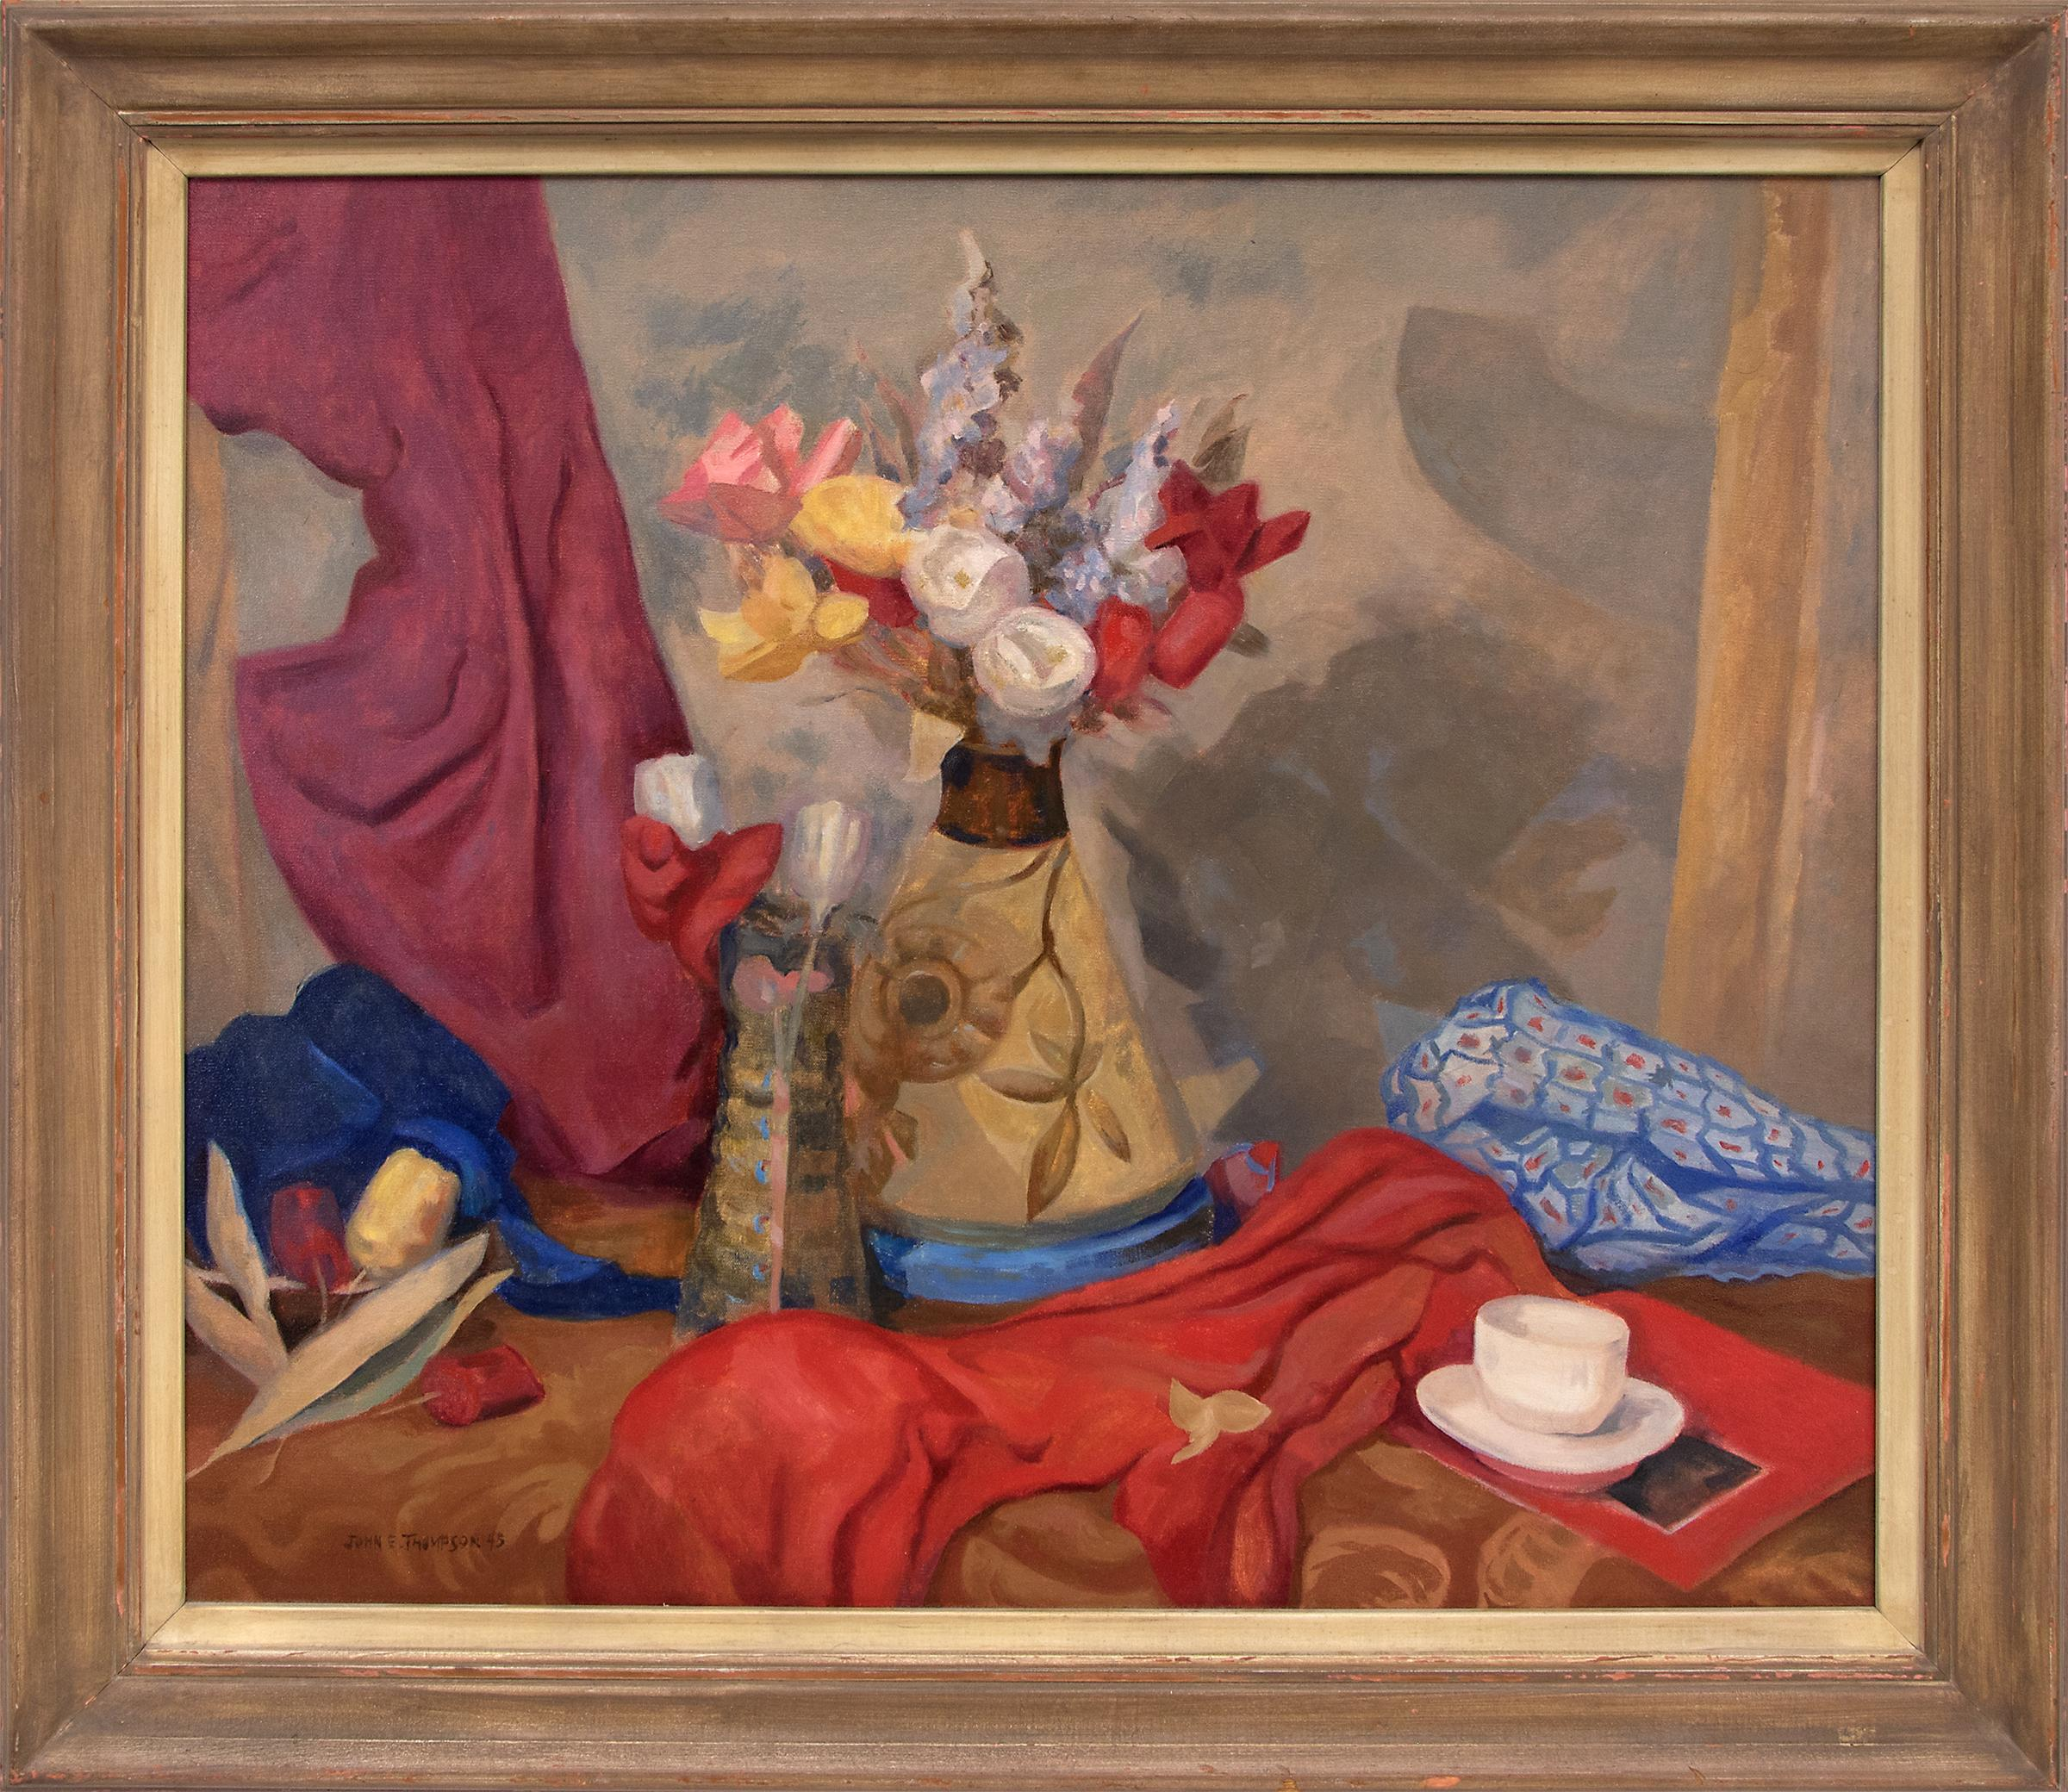 Untitled (Still Life with Flowers, Table and Drapery, Red, Yellow, Blue, Purple)